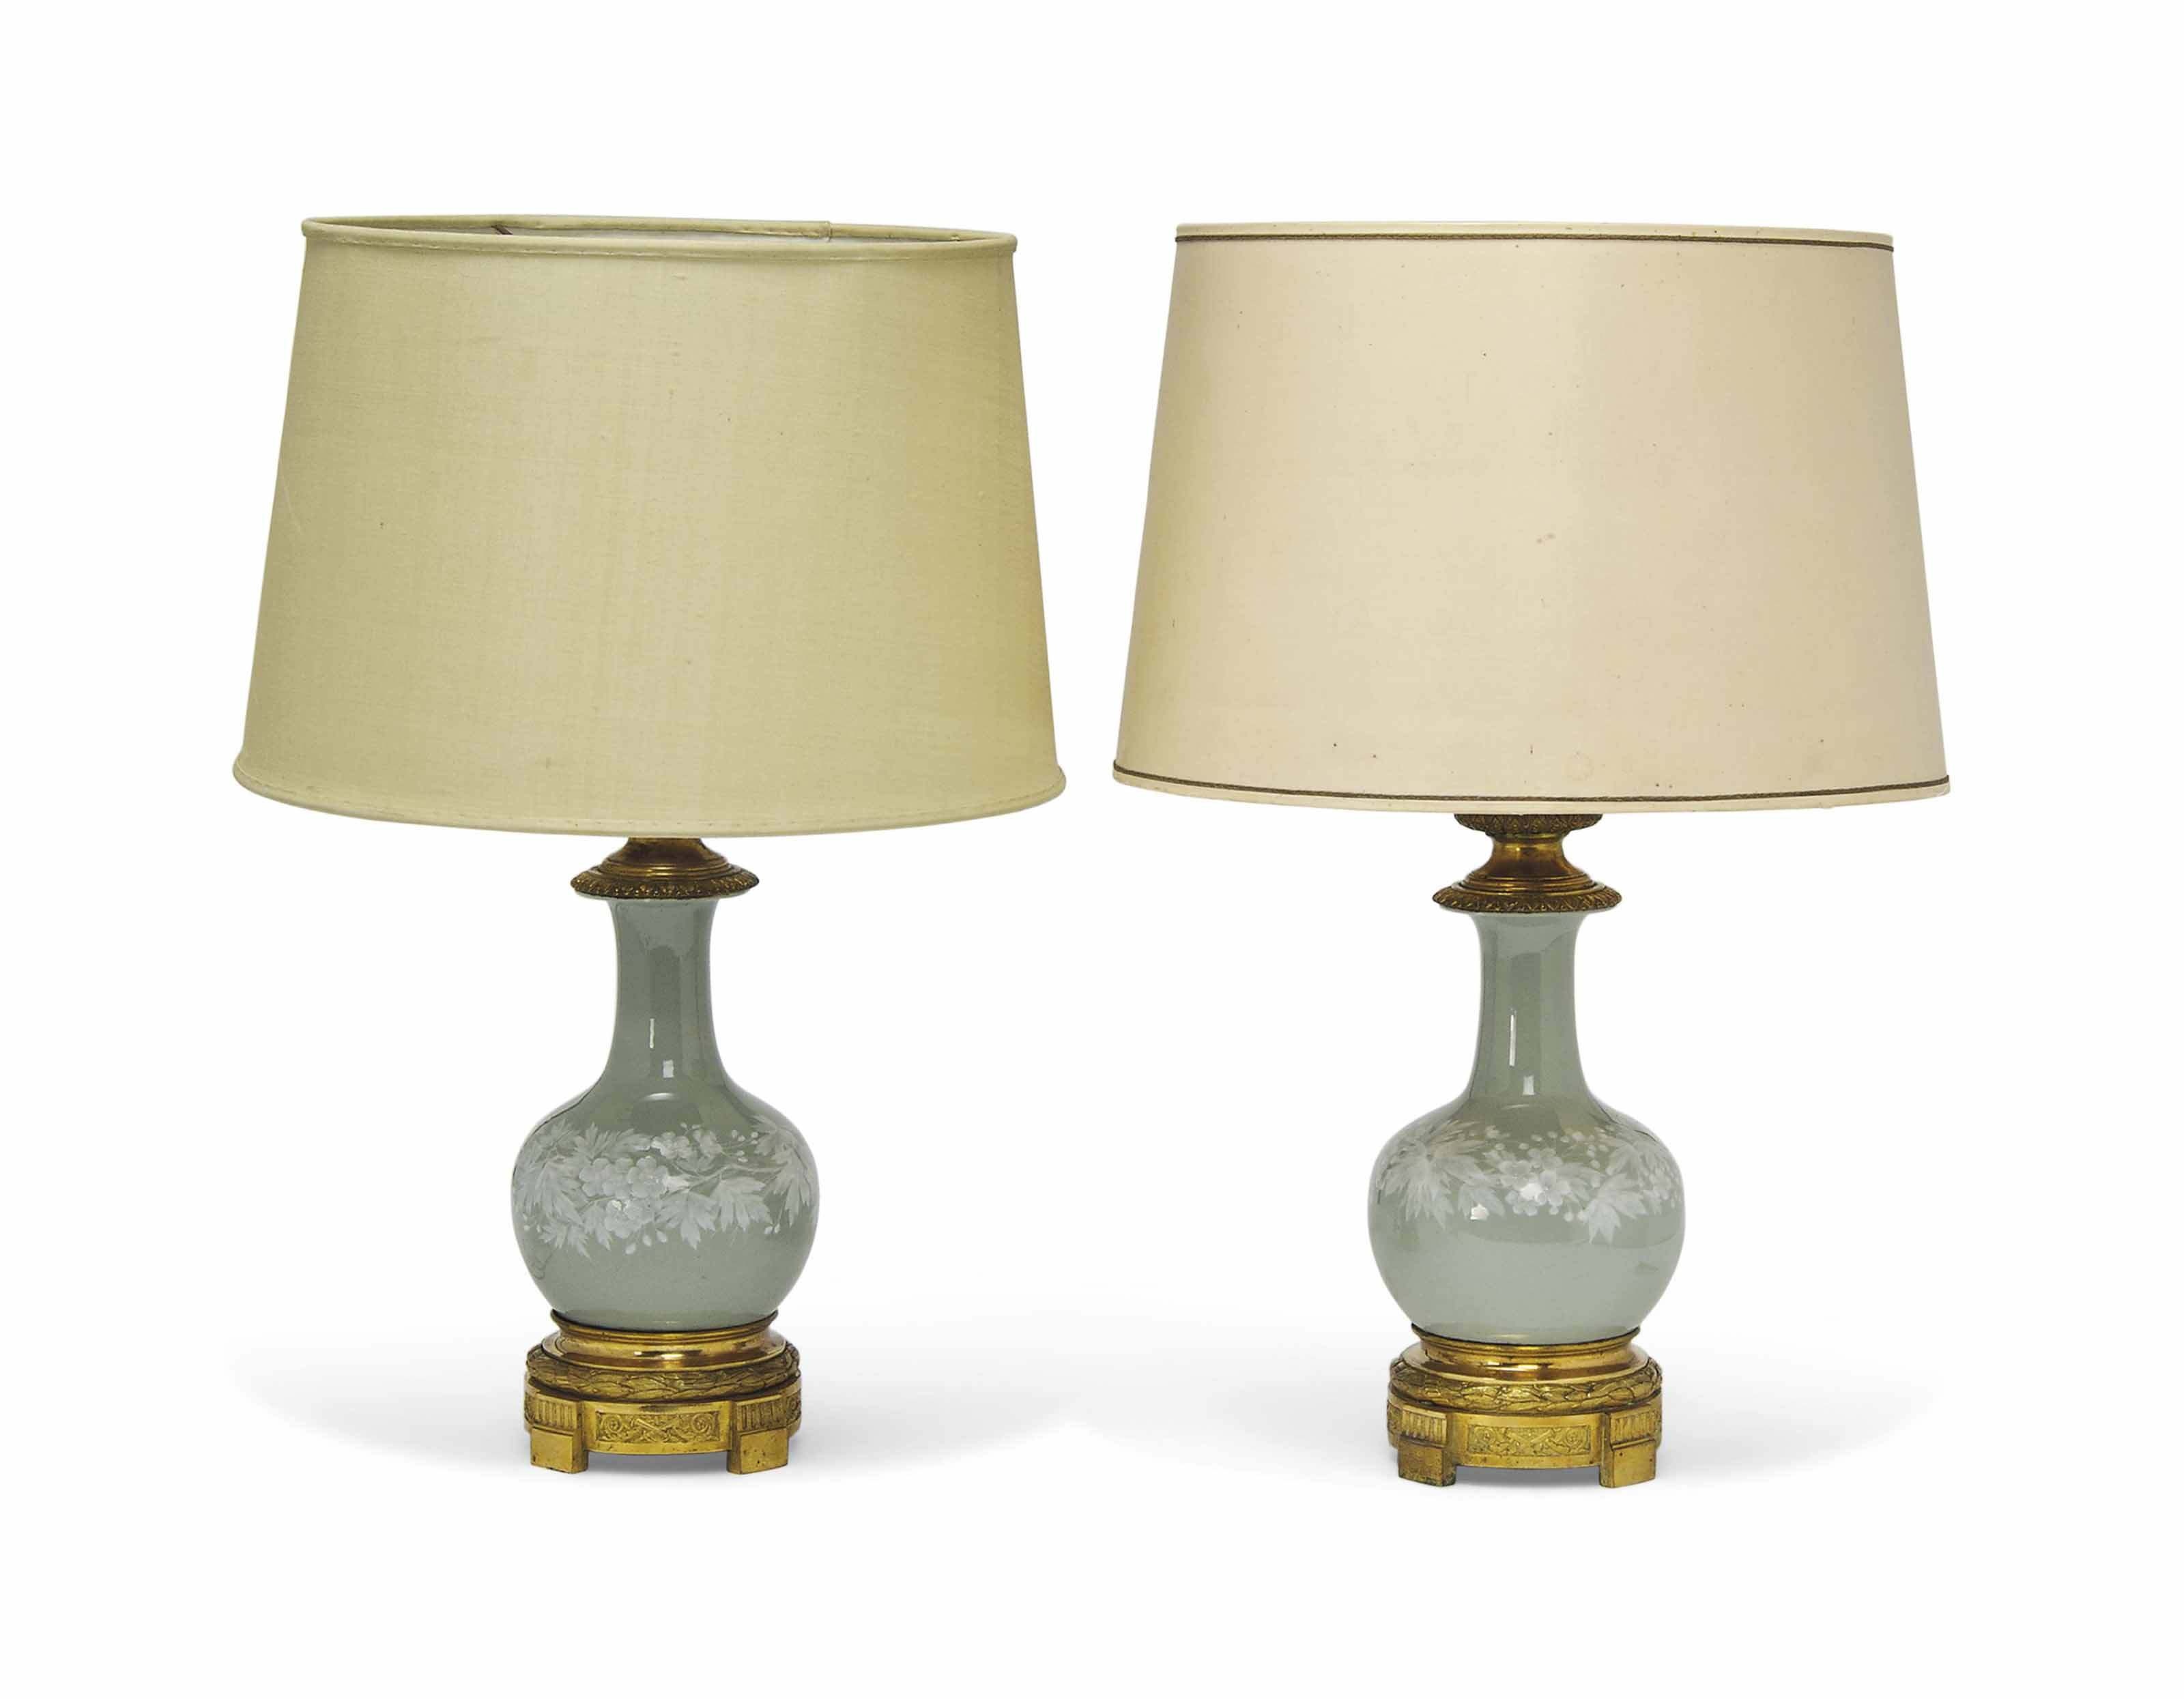 A PAIR OF FRENCH GILT-METAL MOUNTED PATE-SUR-PATE CELADON PORCELAIN TABLE LAMPS